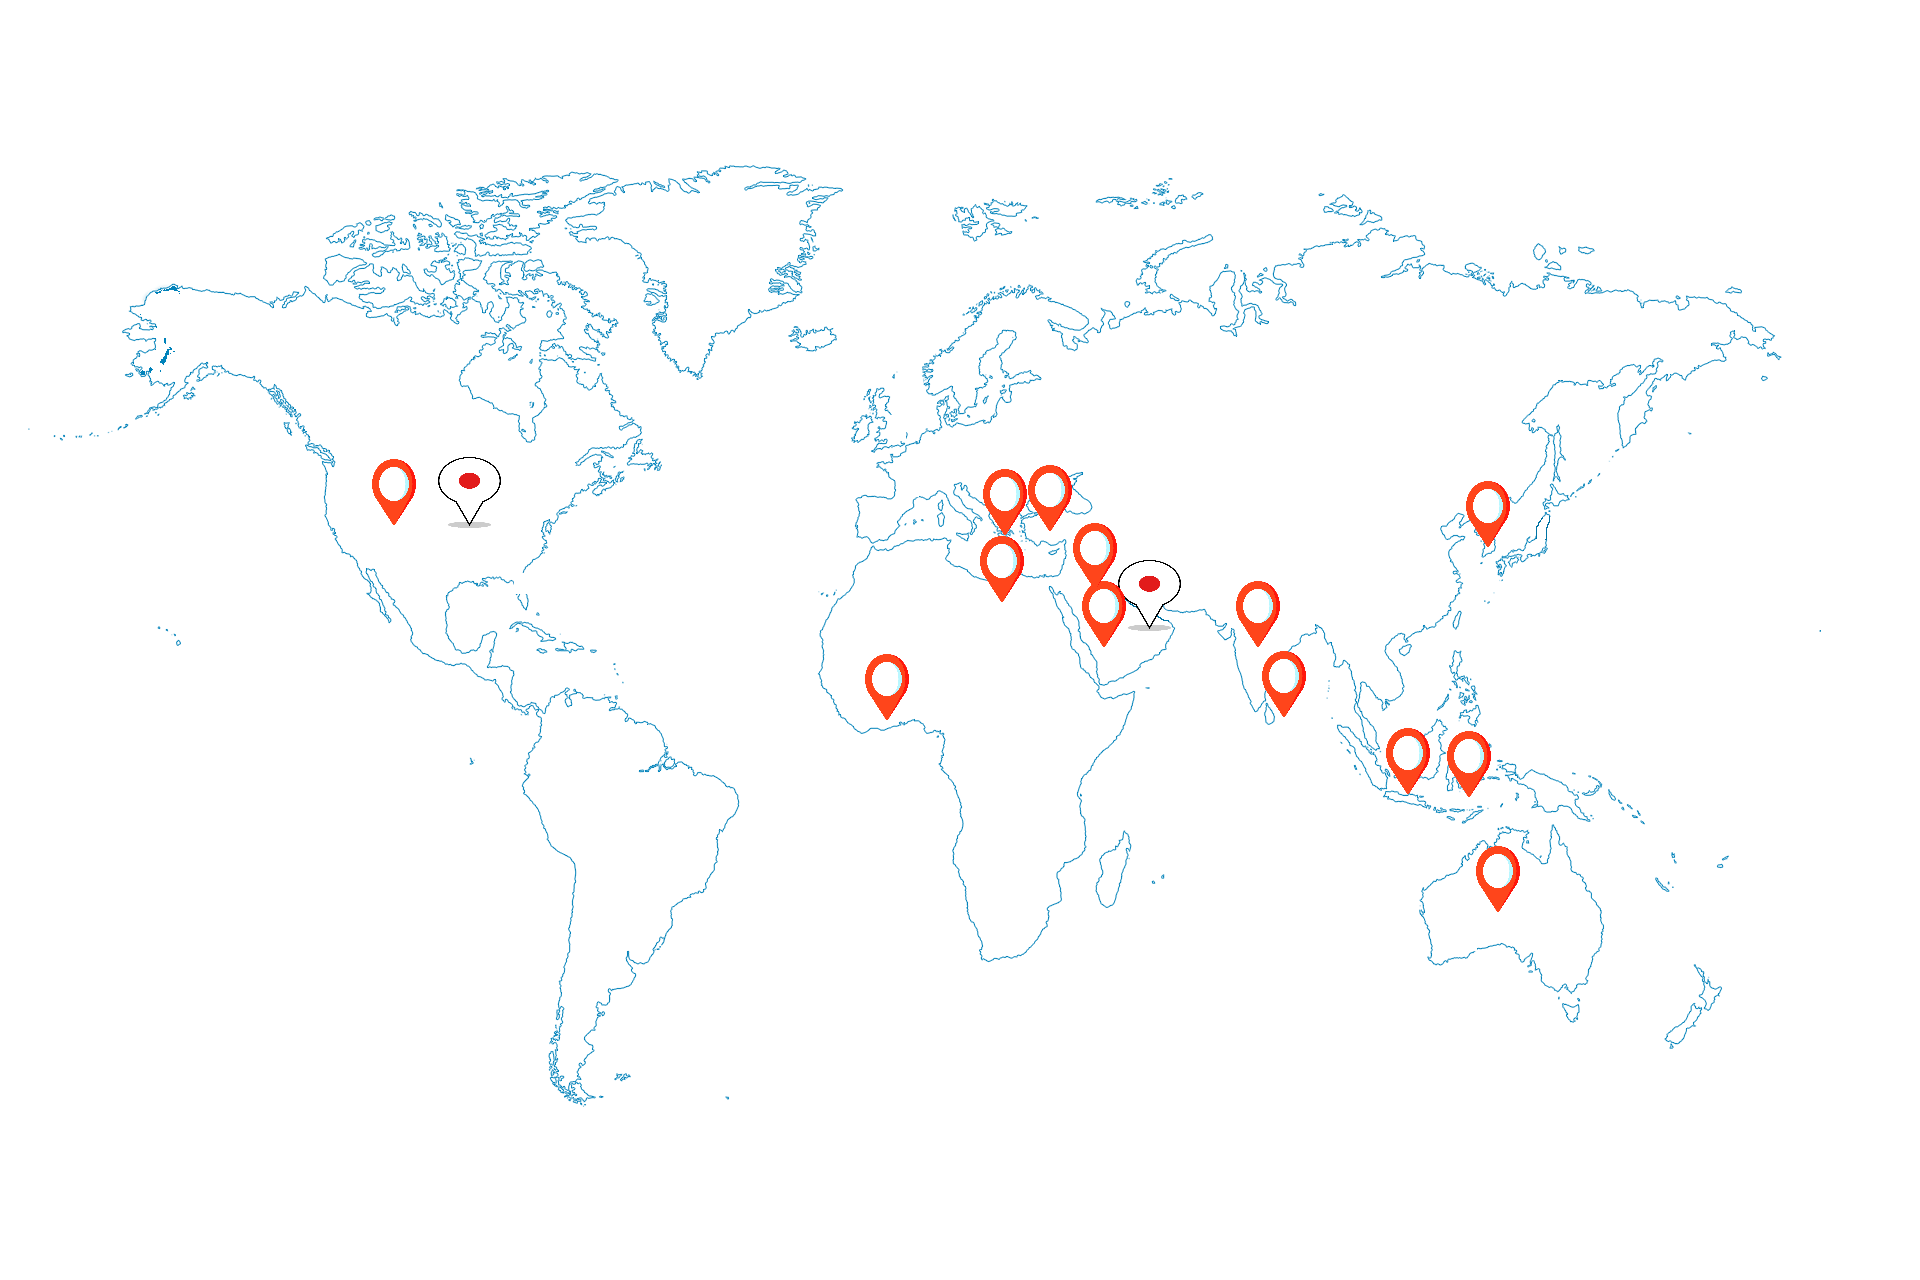 Our <span><strong>Global Footprint</strong></span>